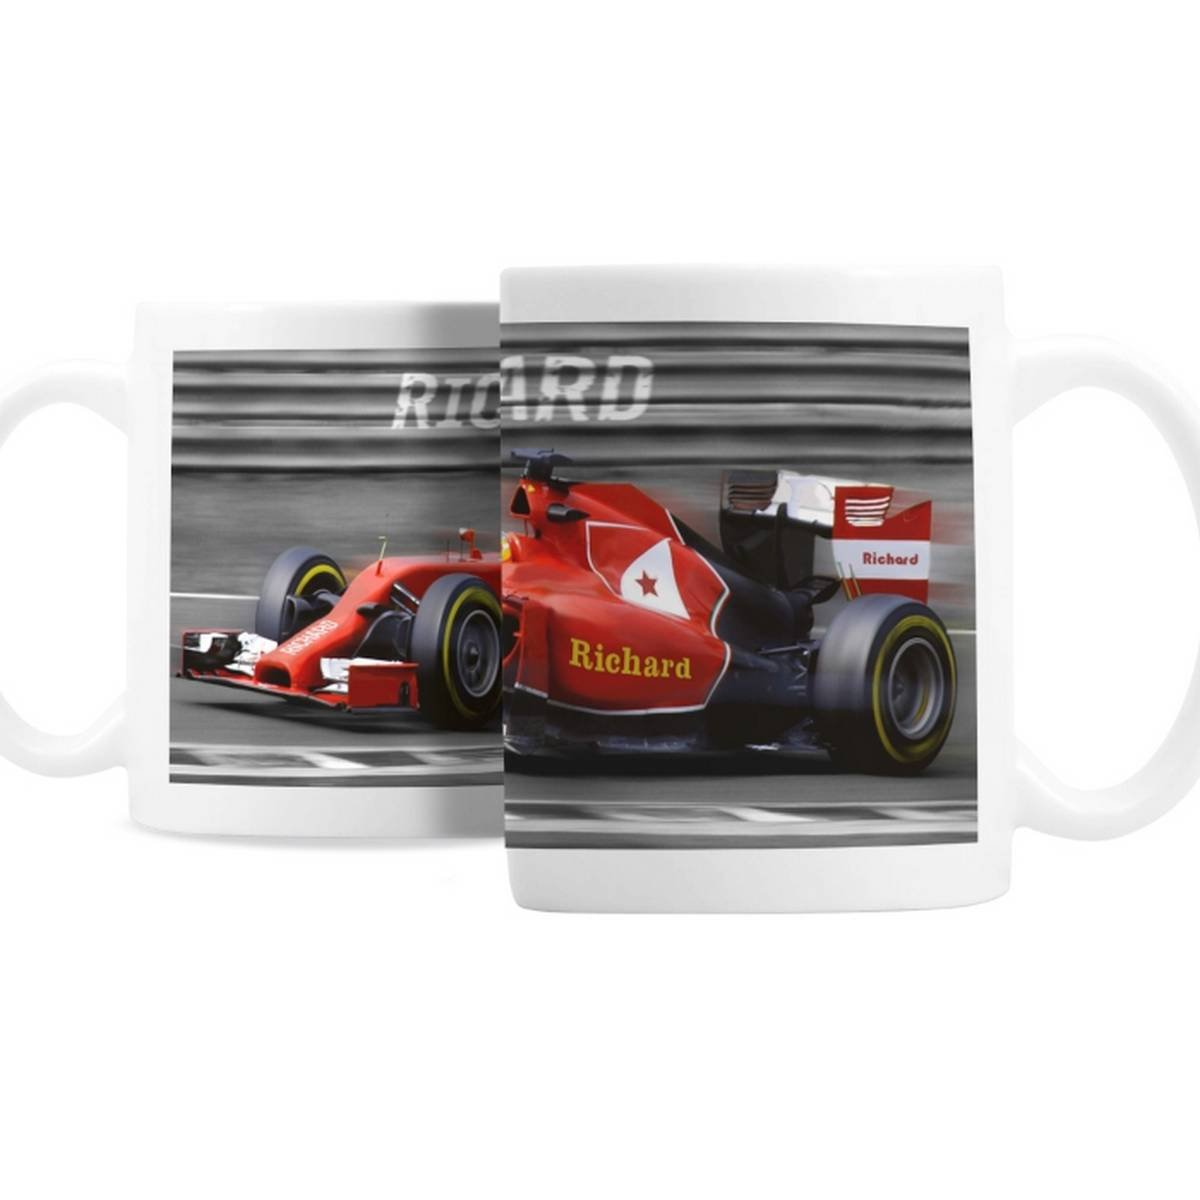 Formula 1 Mug Gifts, and, Cards Cards, idea Occasion, Gift, Idea Personalised GiftRush